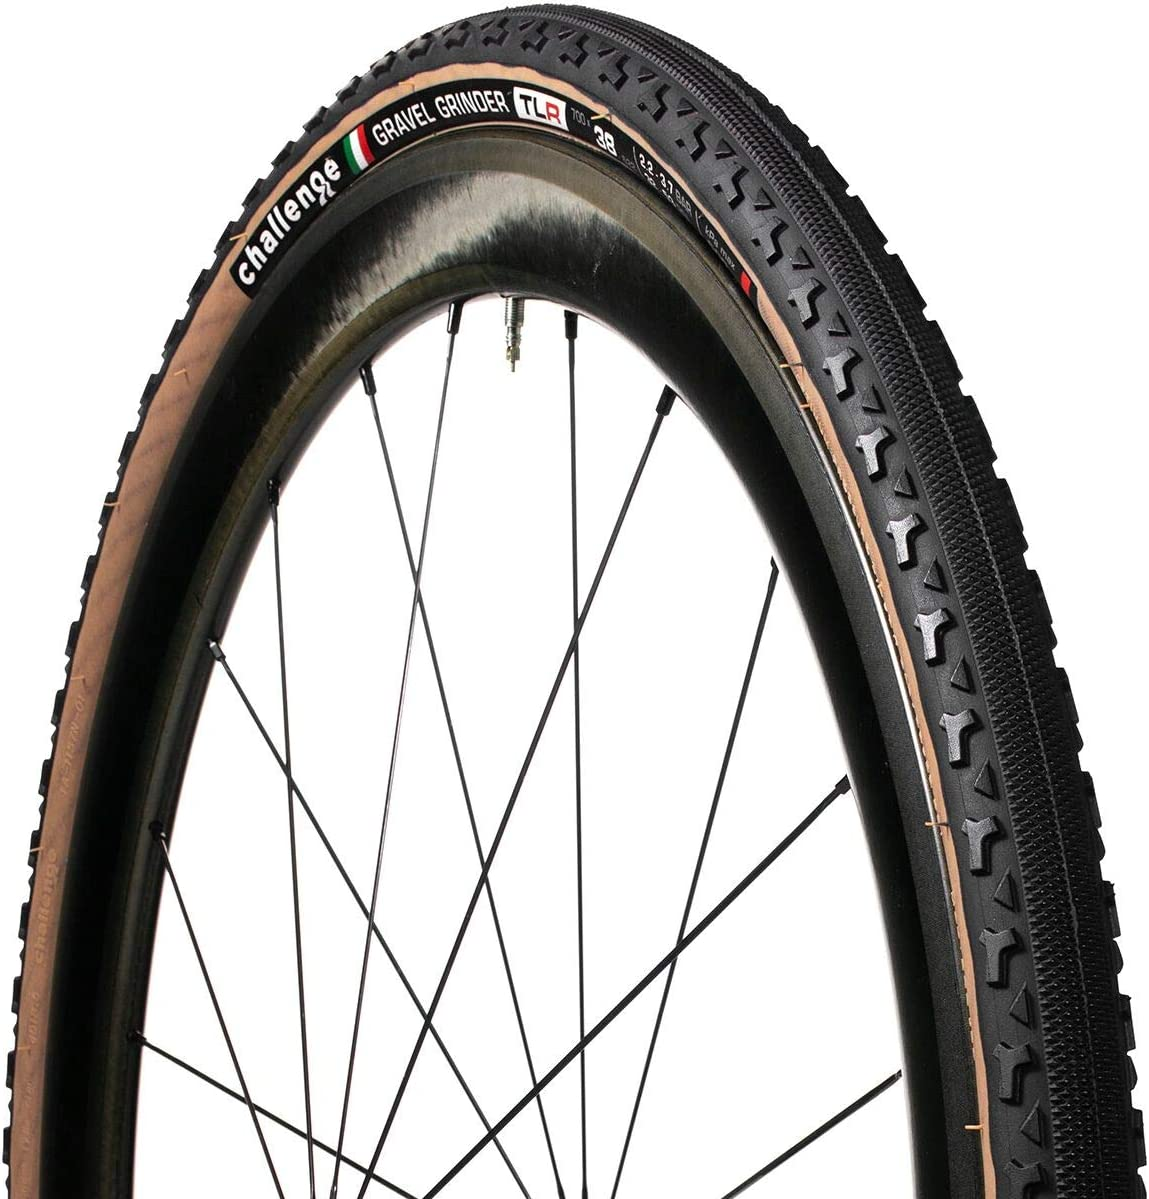 Challenge Gravel Grinder Tubeless Black/Brown Superlight 33 - Neumático para Bicicleta, Unisex, para Adulto, 700 x 33 C: Amazon.es: Deportes y aire libre